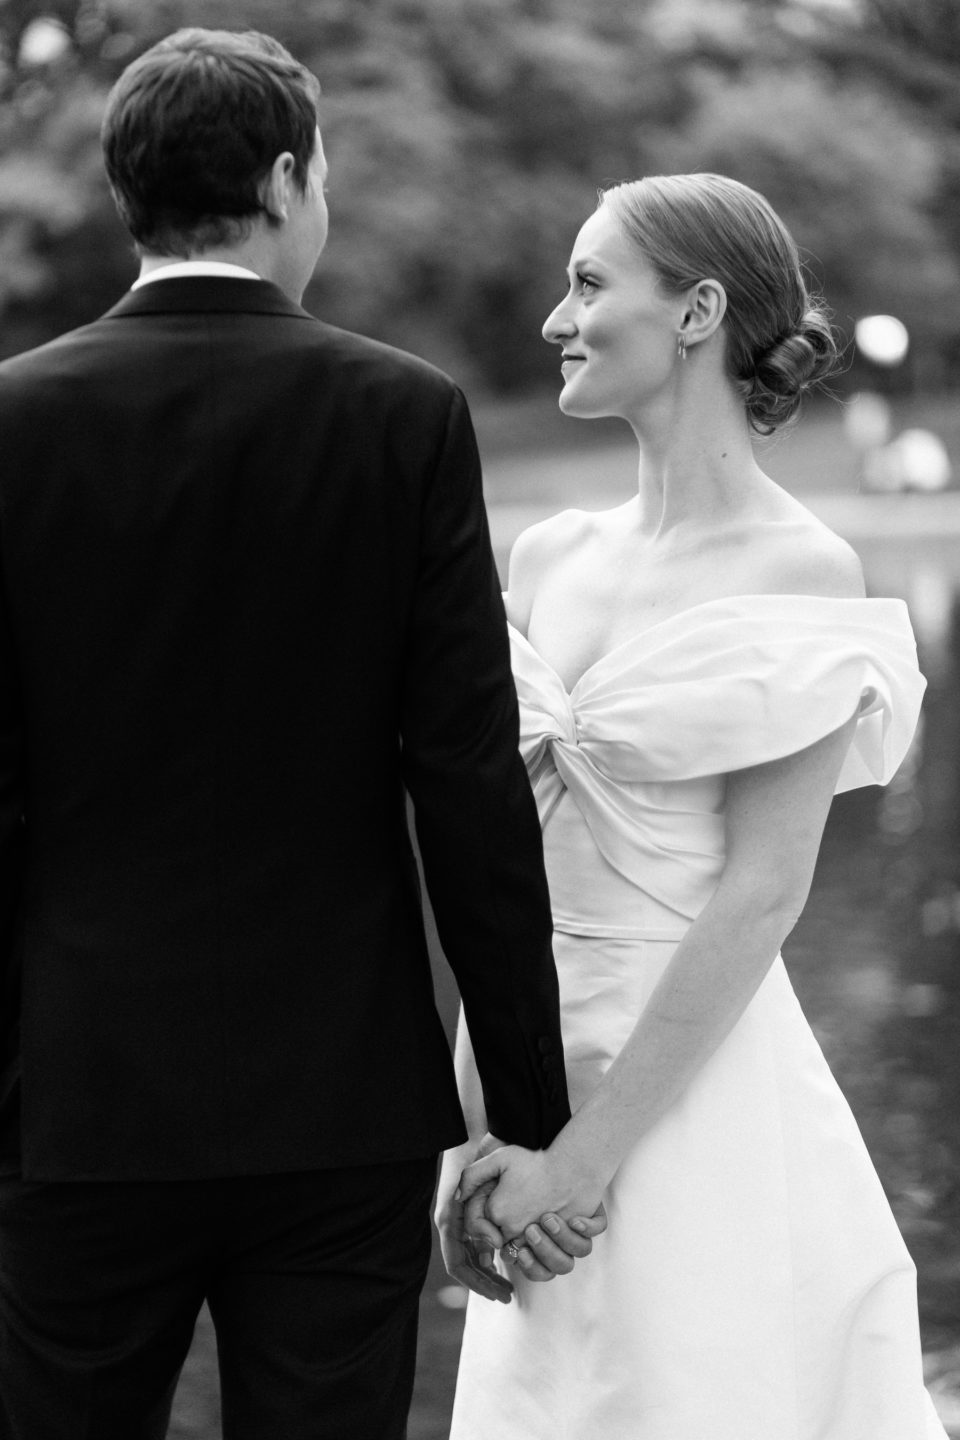 black and white portraits of bride and groom central park